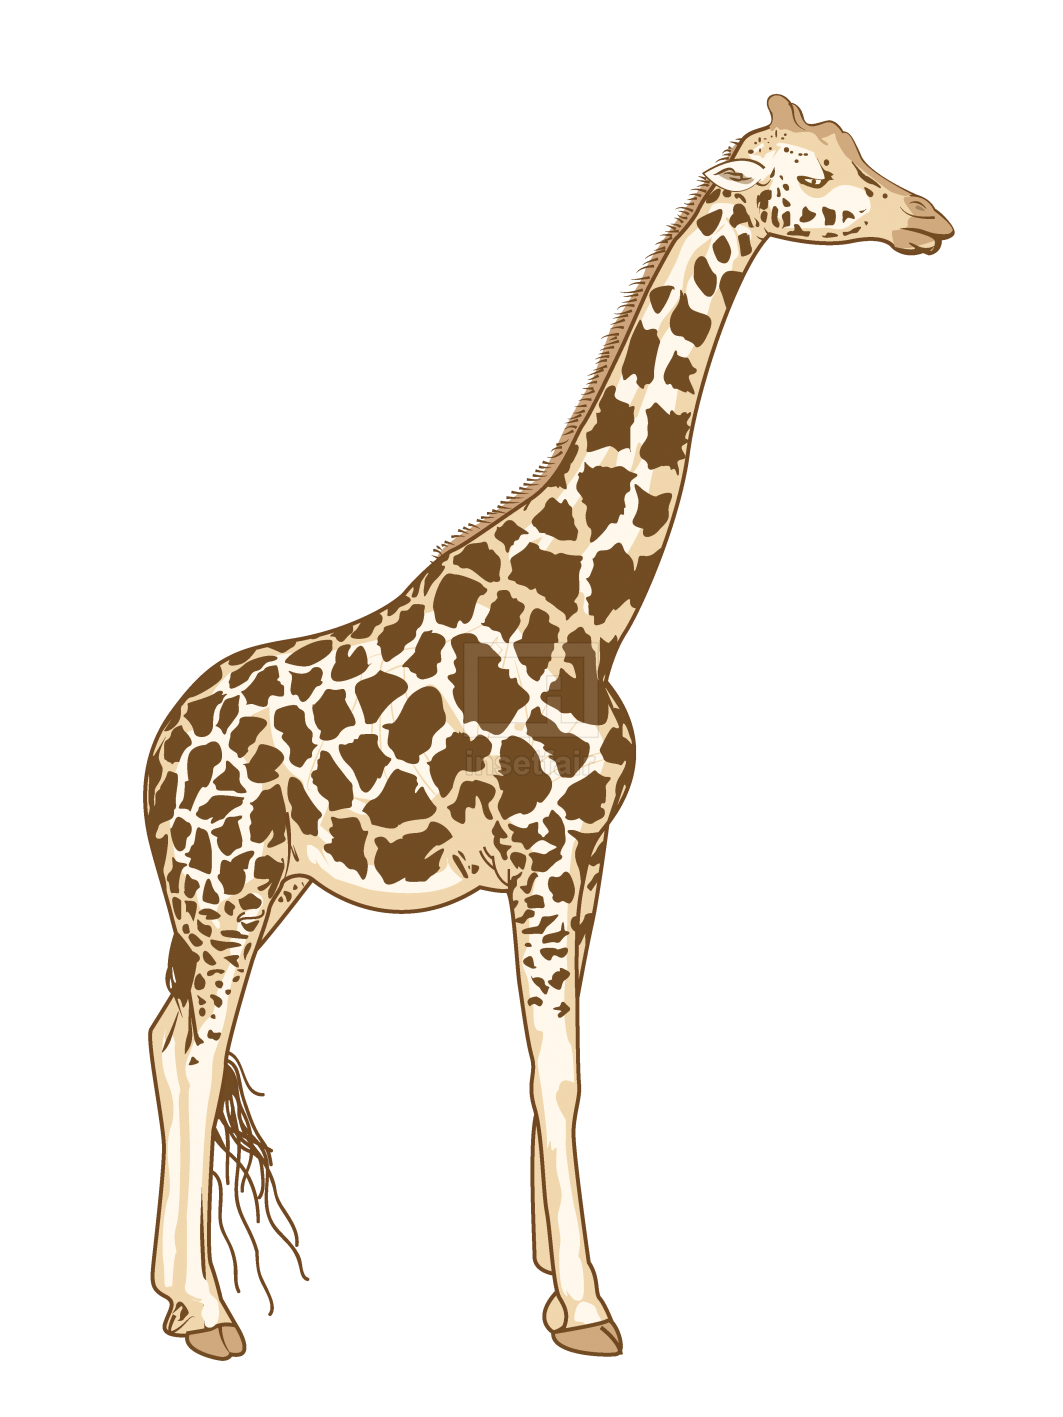 Lazy giraffe standing straight vector drawing free for commercial use